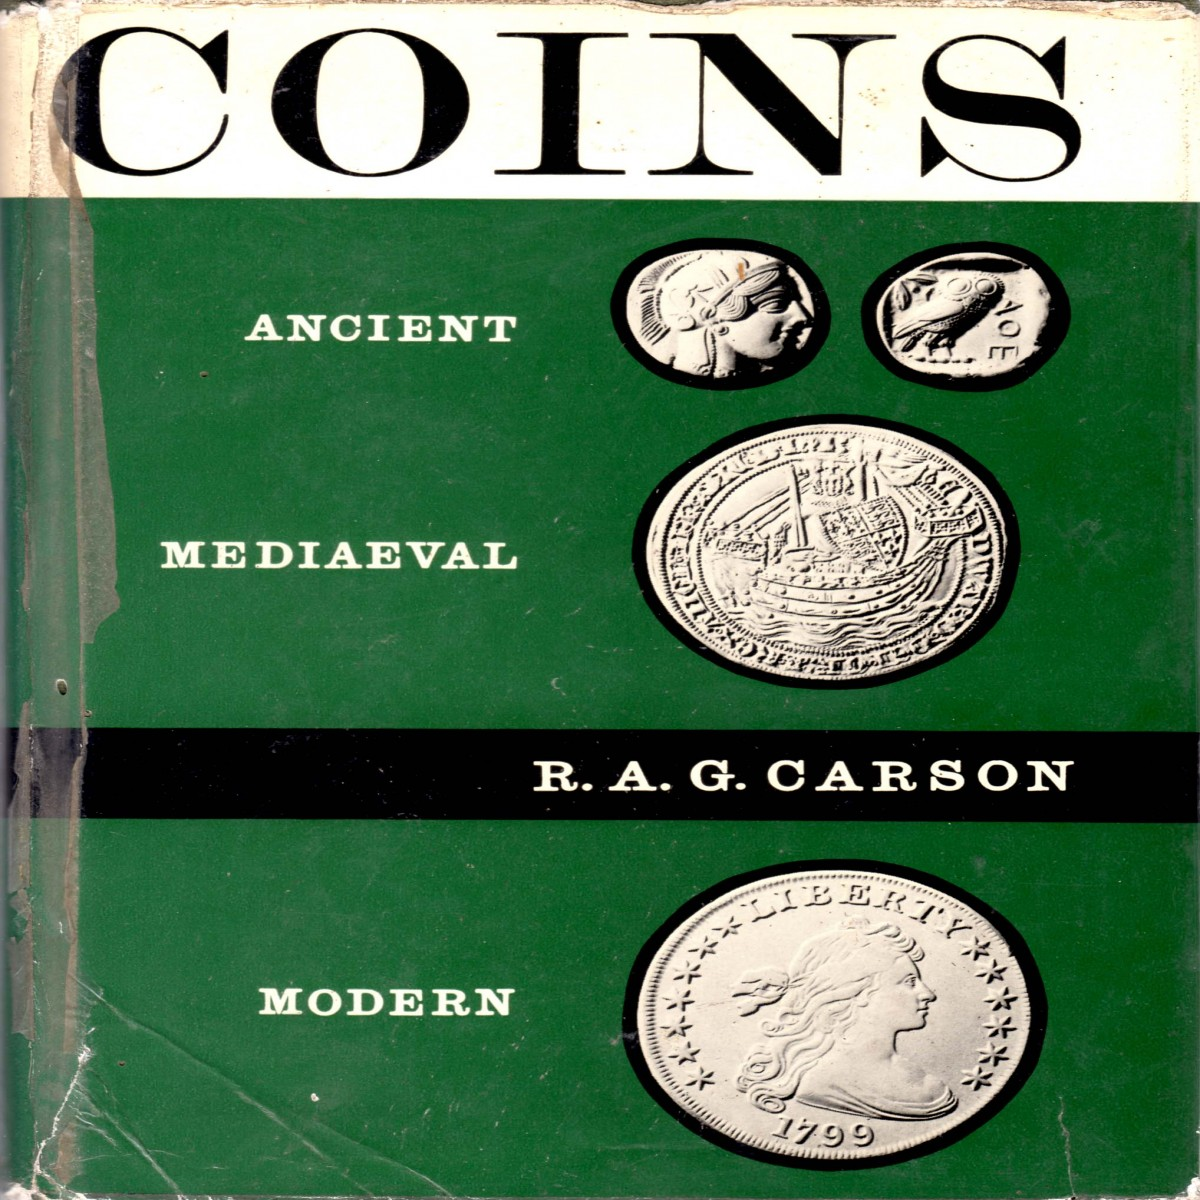 Coins : Ancient, Mediaeval & Modern